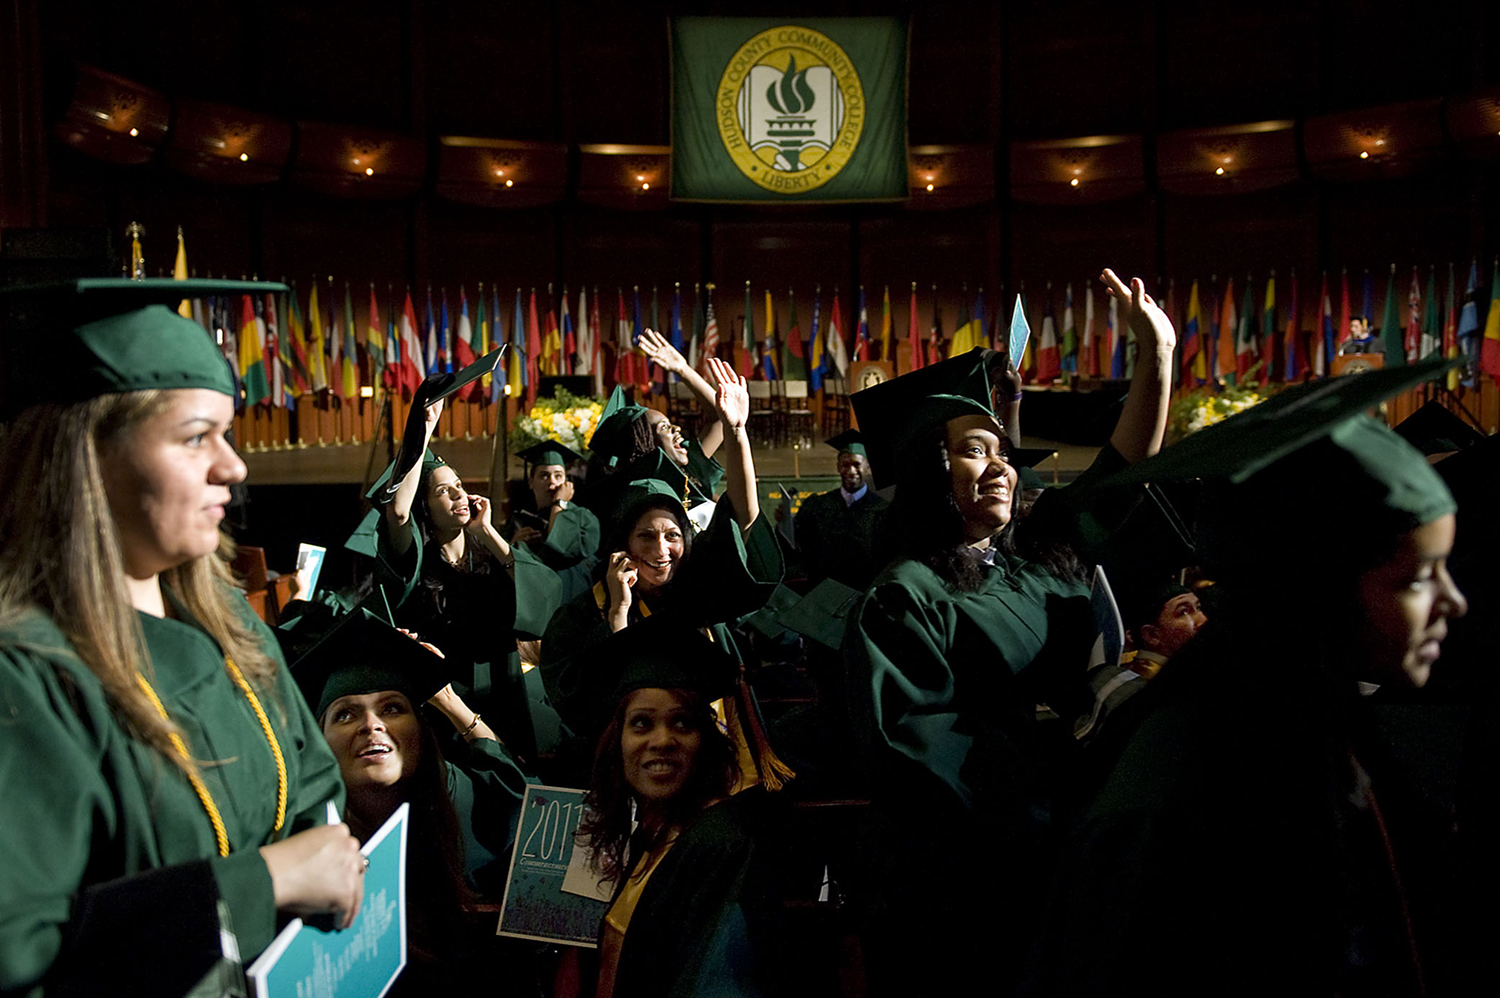 Graduates wave to the their loved ones in the audience before the start of the Hudson County Community College graduation ceremony at The New Jersey Performing Arts Center. (Reena Rose Sibayan/The Jersey Journal)